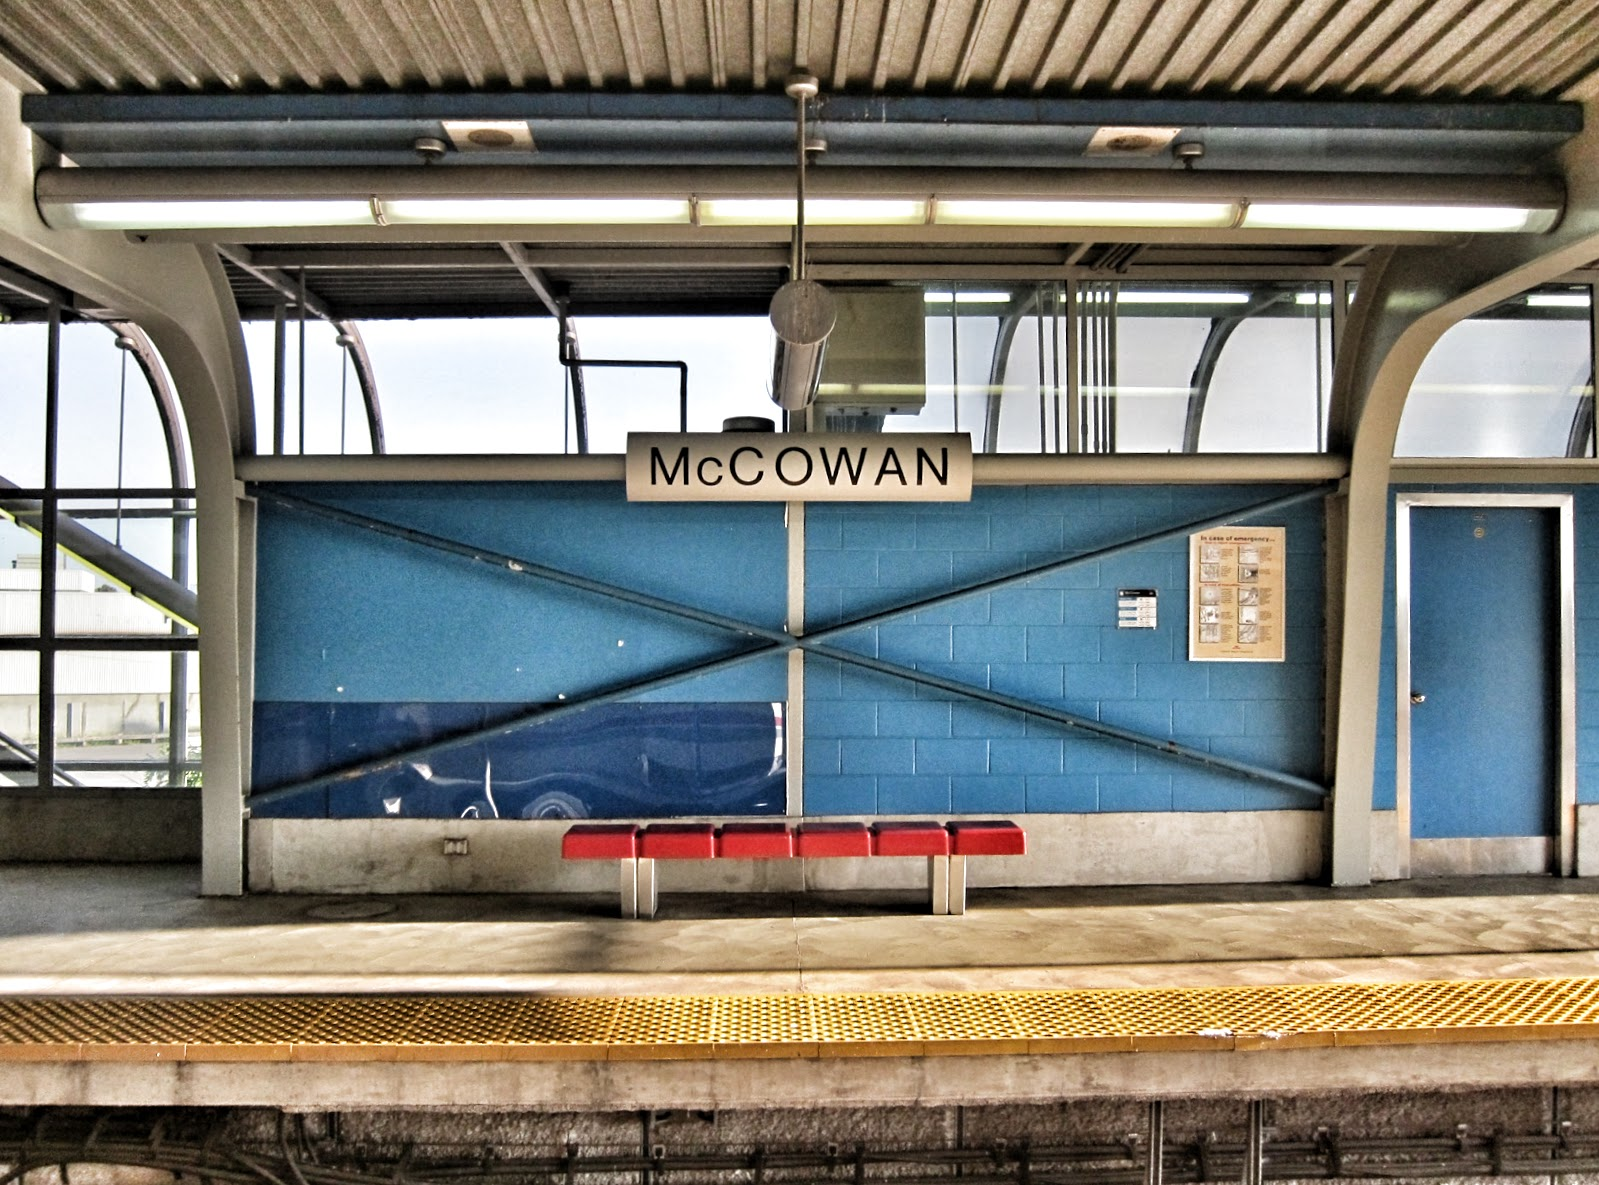 Unused platform and bench at McCowan station